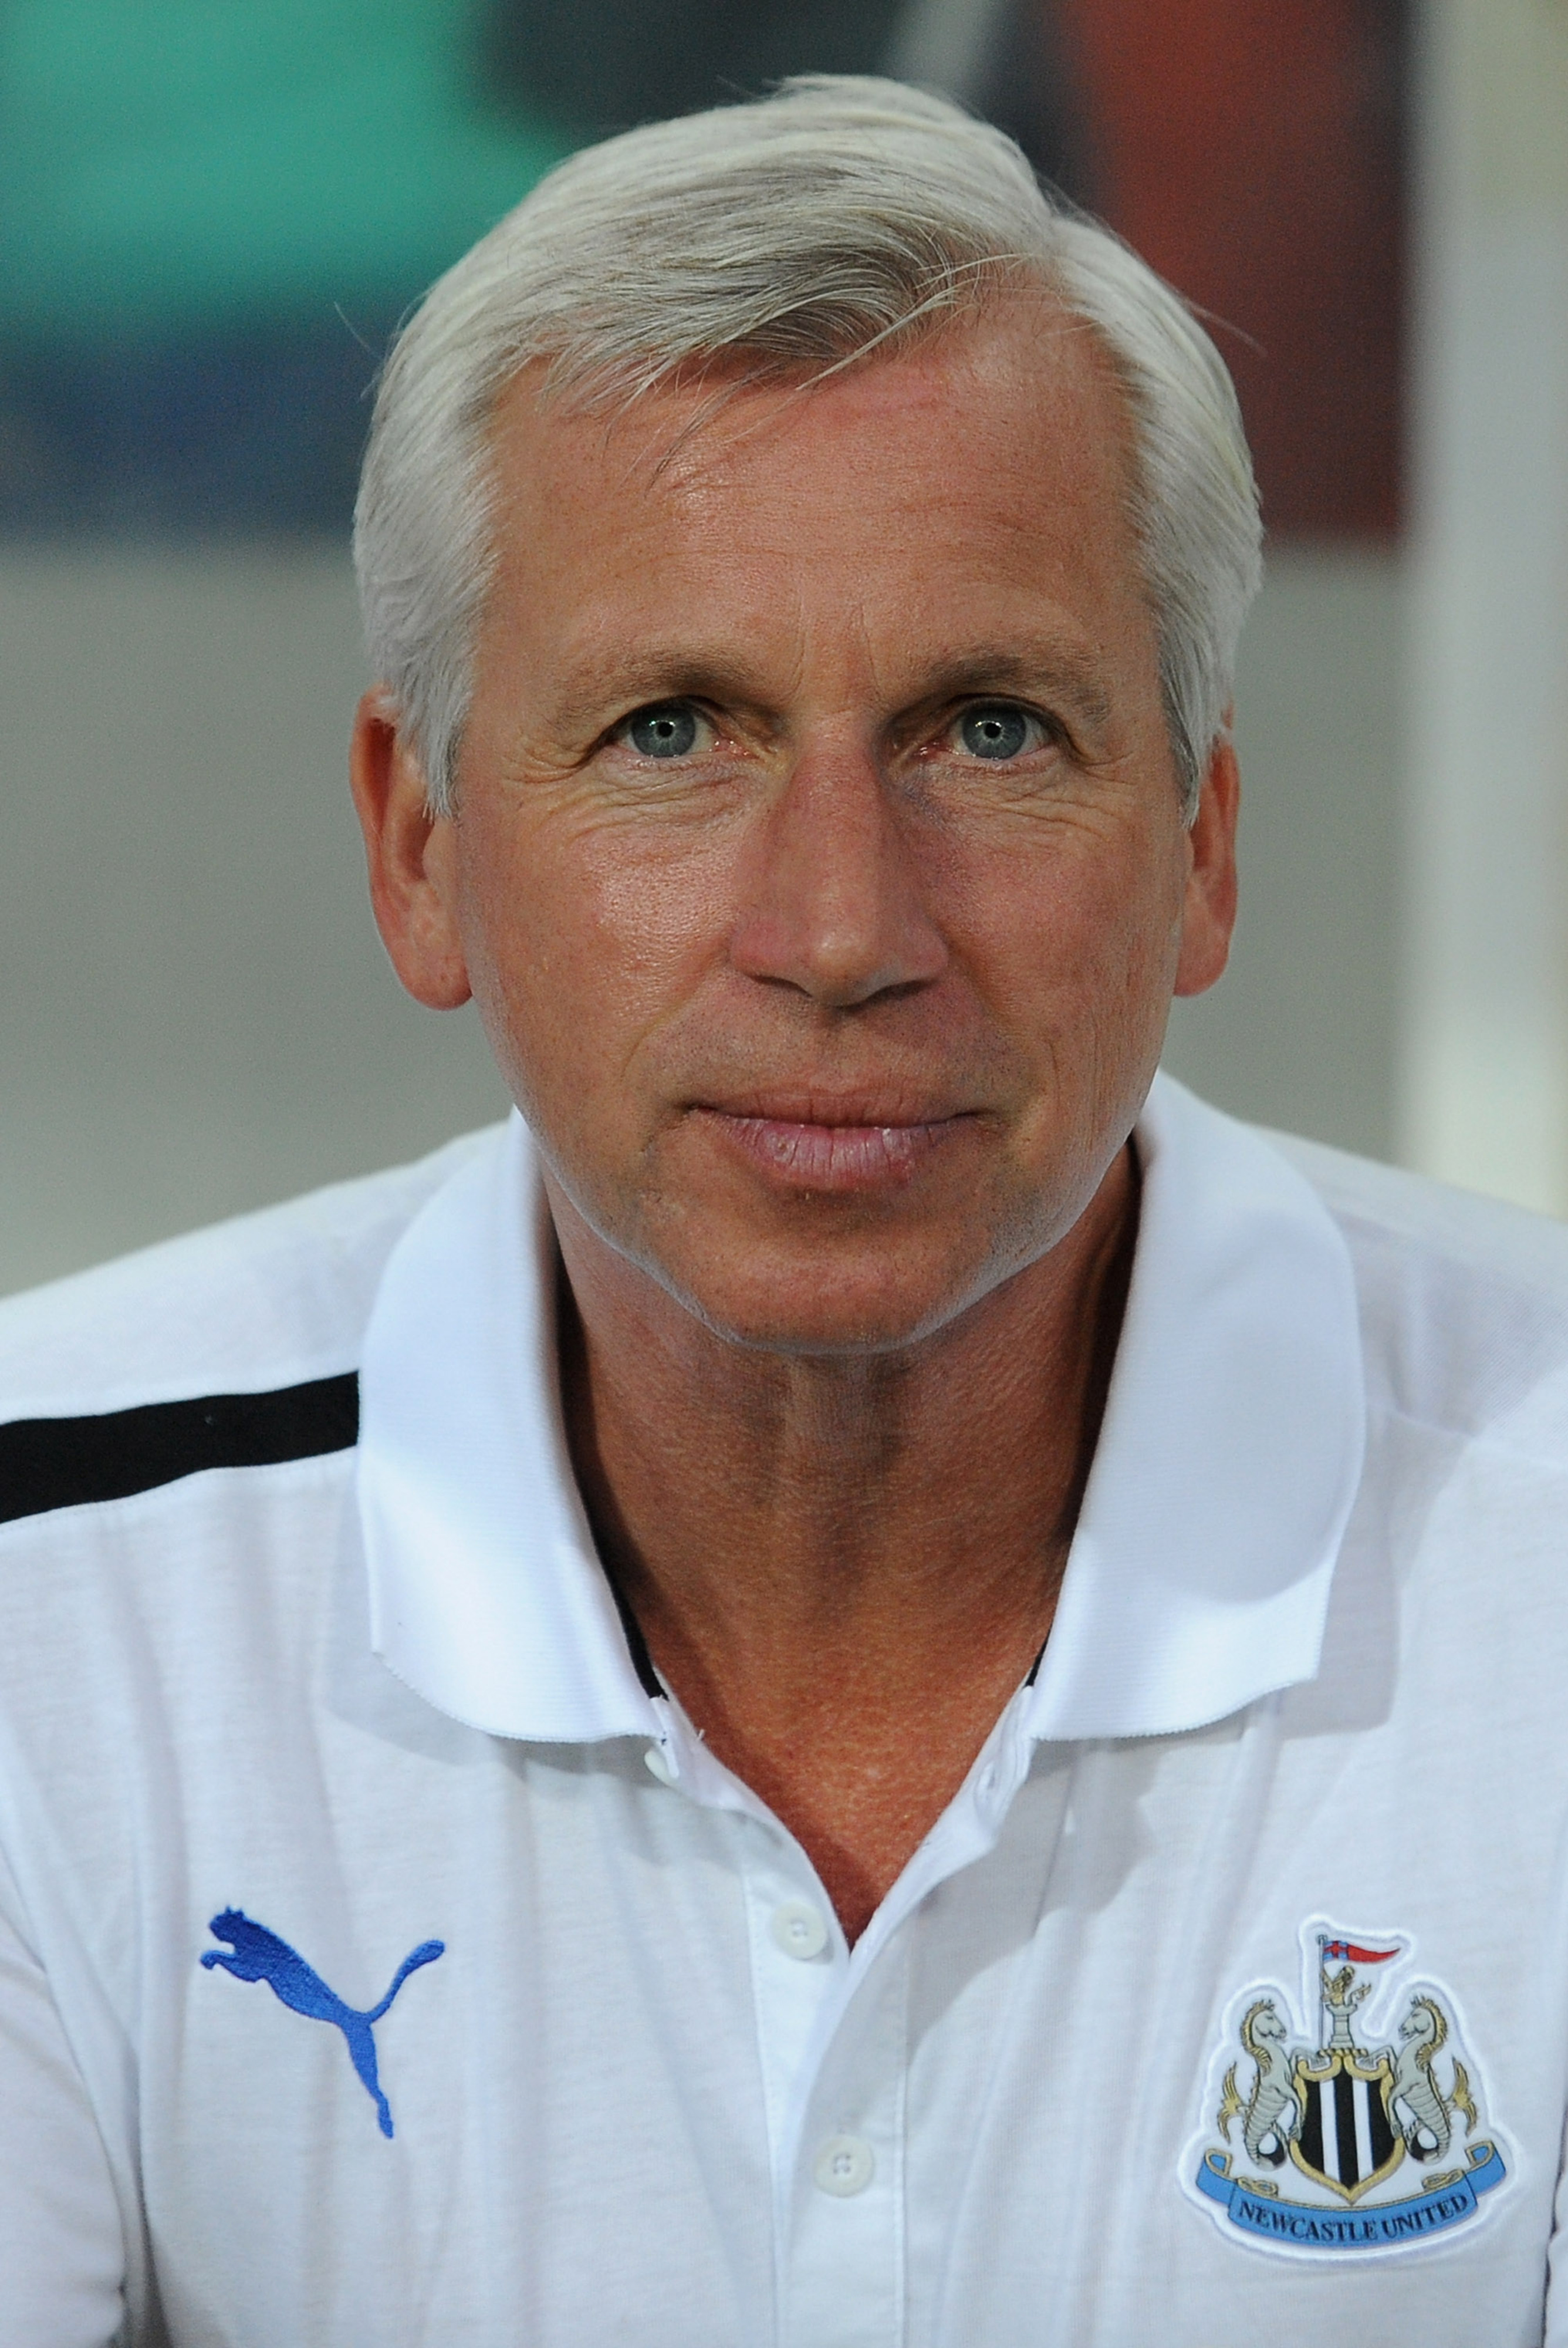 FARO, PORTUGAL - JULY 27:  Newcastle United manager Alan Pardew looks on prior to the pre-Season friendly match between Newcastle United and Olympiacos on July 27, 2012 in Faro, Portugal.  (Photo by Valerio Pennicino/Getty Images)